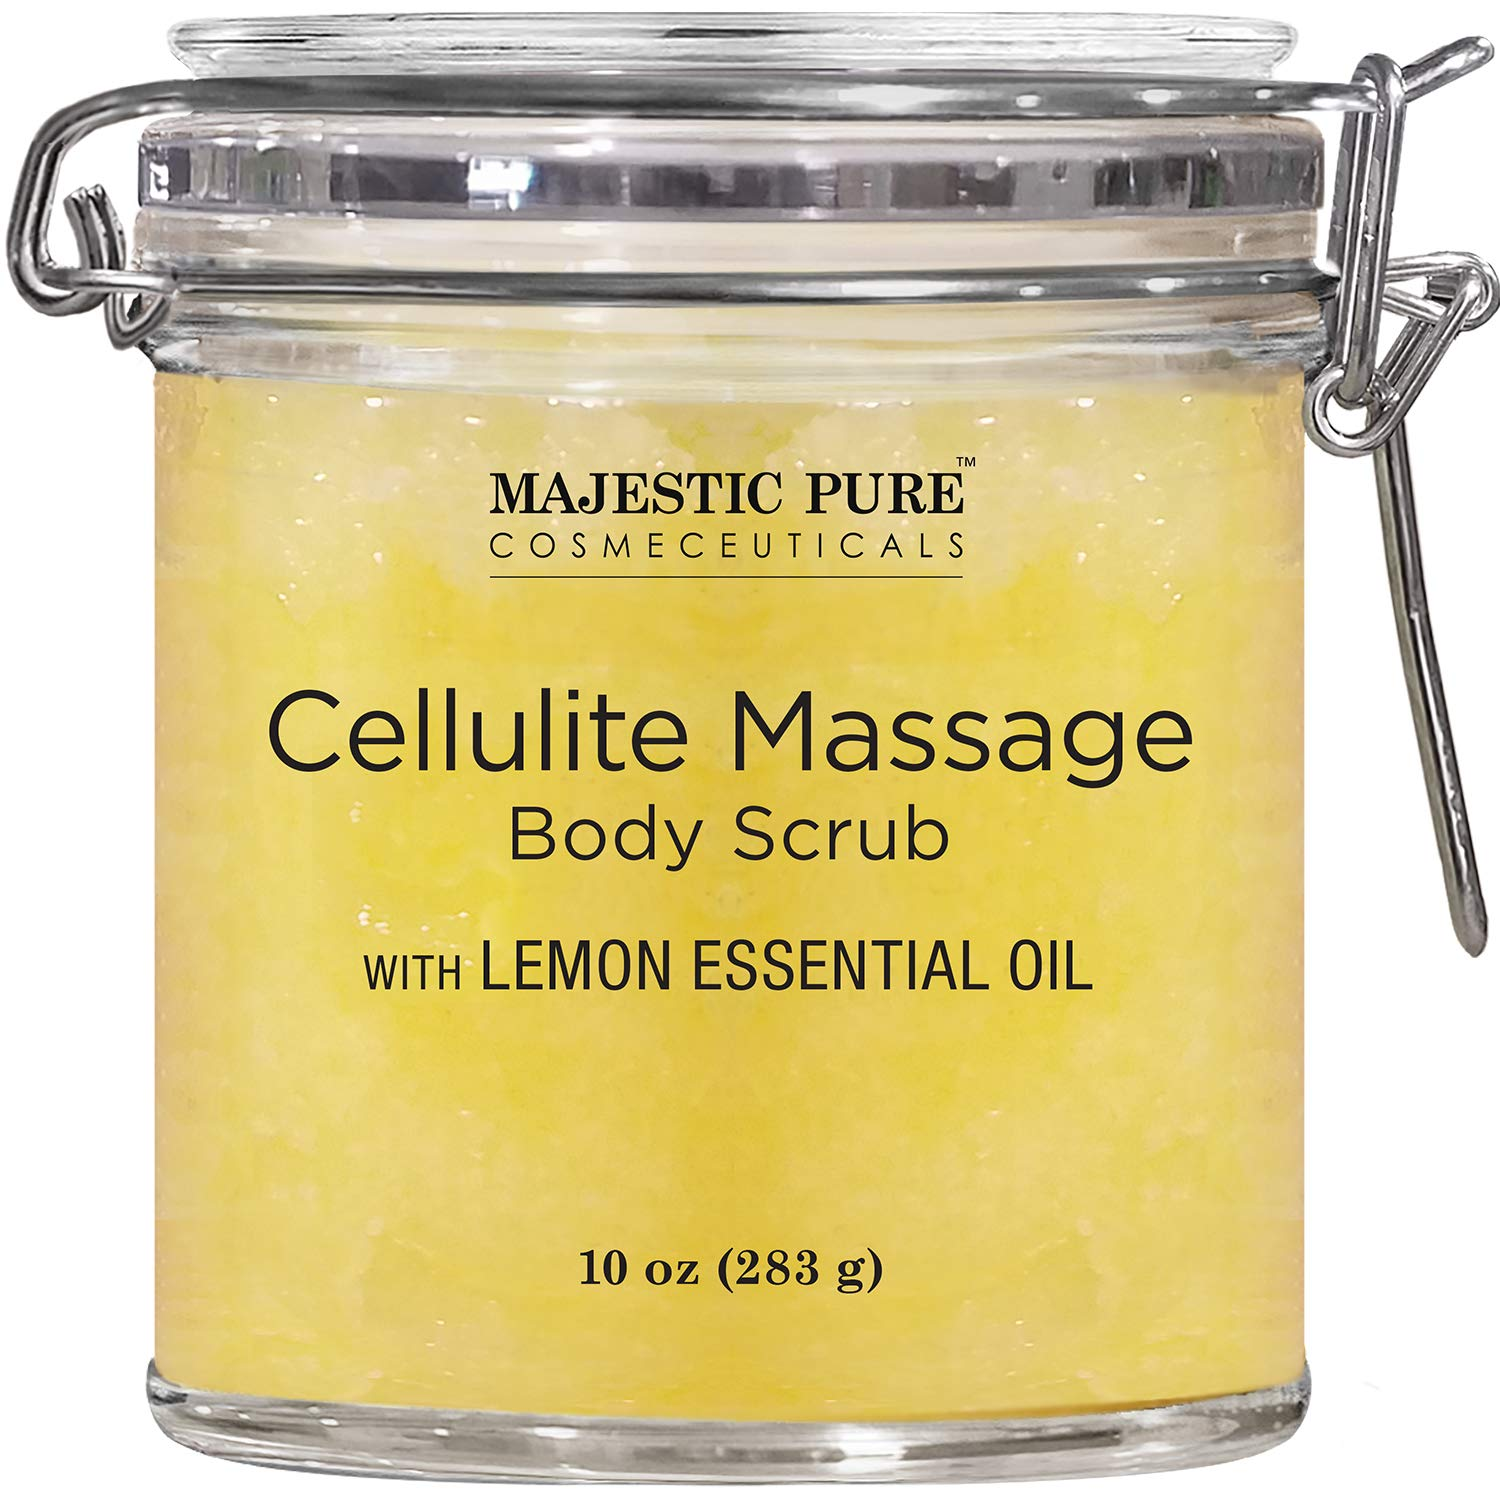 MAJESTIC PURE Cellulite Massage Body Scrub Infused with Lemon and Grapefruit Essential Oils - Exfoliates, Soothes, Relaxes, and Tightens Skin - 10 oz by Majestic Pure